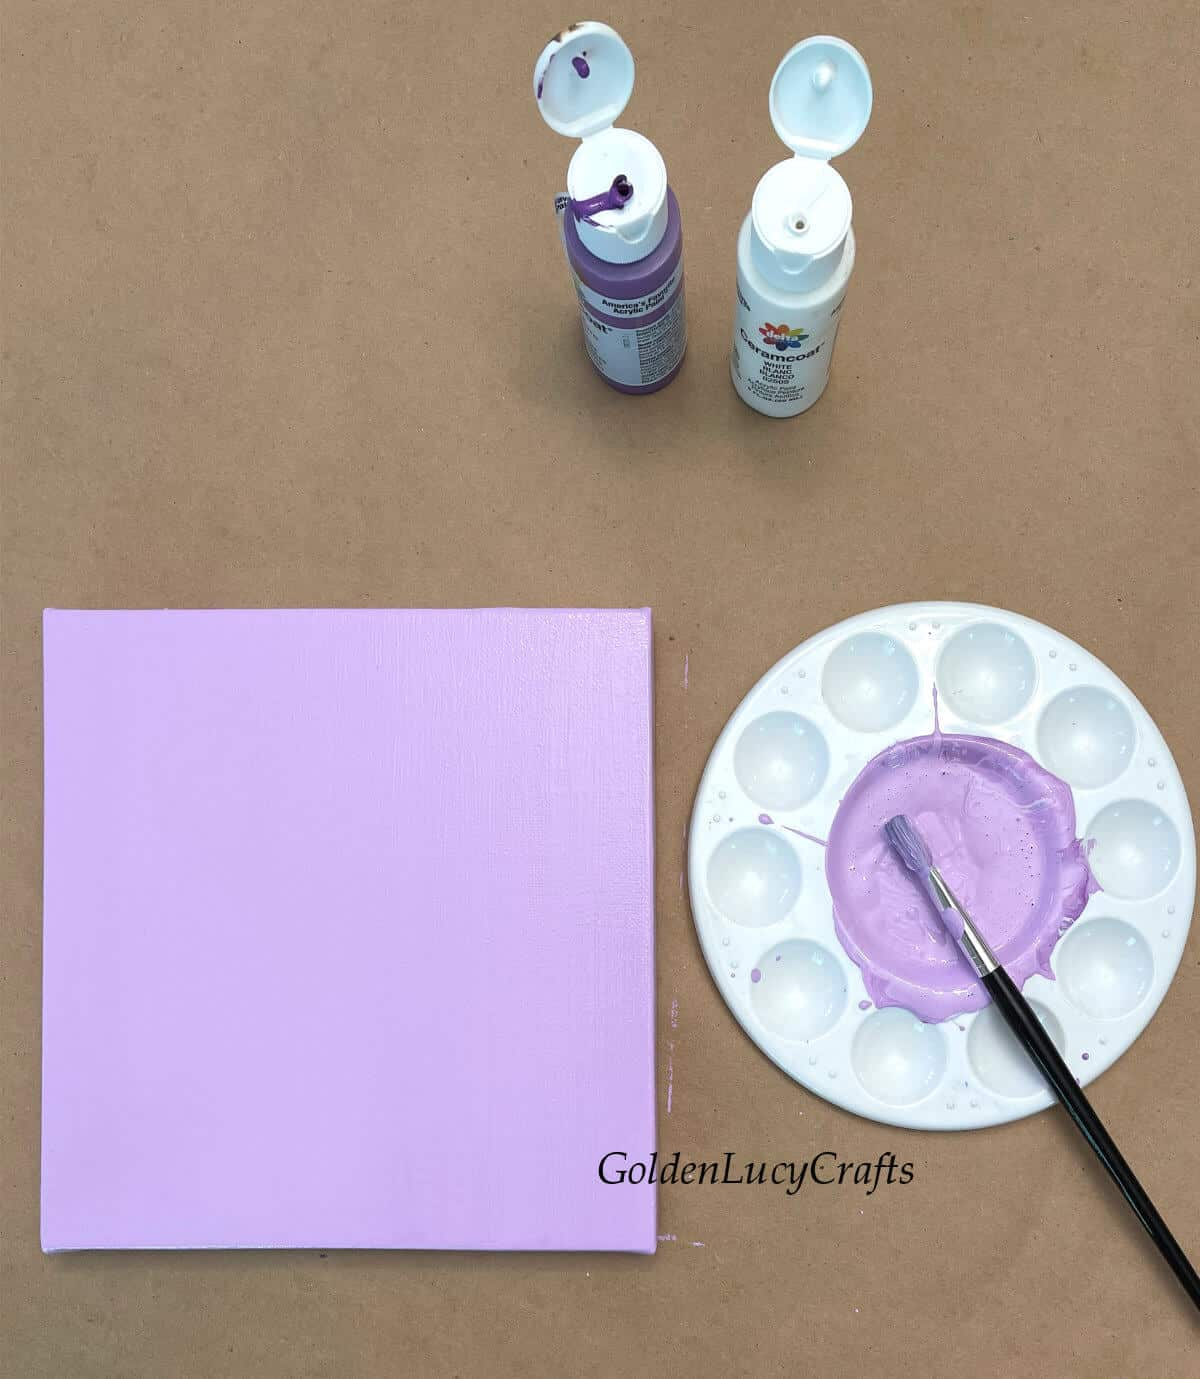 Canvas painted in light lavender color, paint brash, two open bottles of paint on the table.